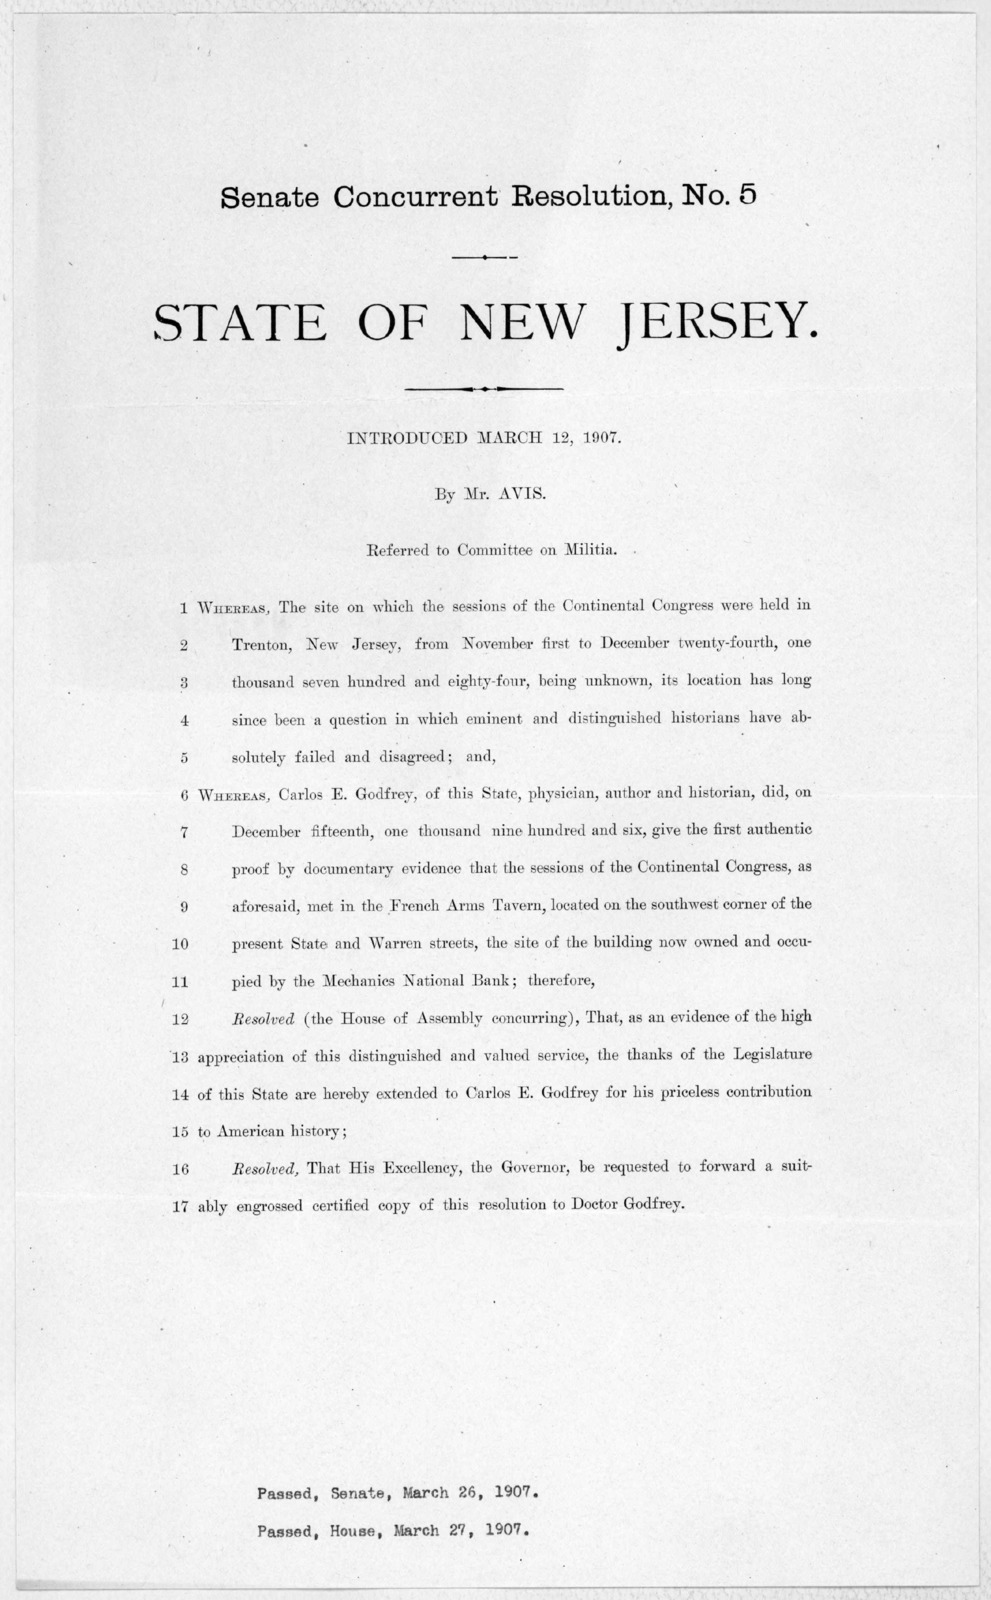 Senate concurrent resolution, No. 5. State of New Jersey. Introduced March 12, 1907. By Mr. Avis. Referred to Committee on Militia.